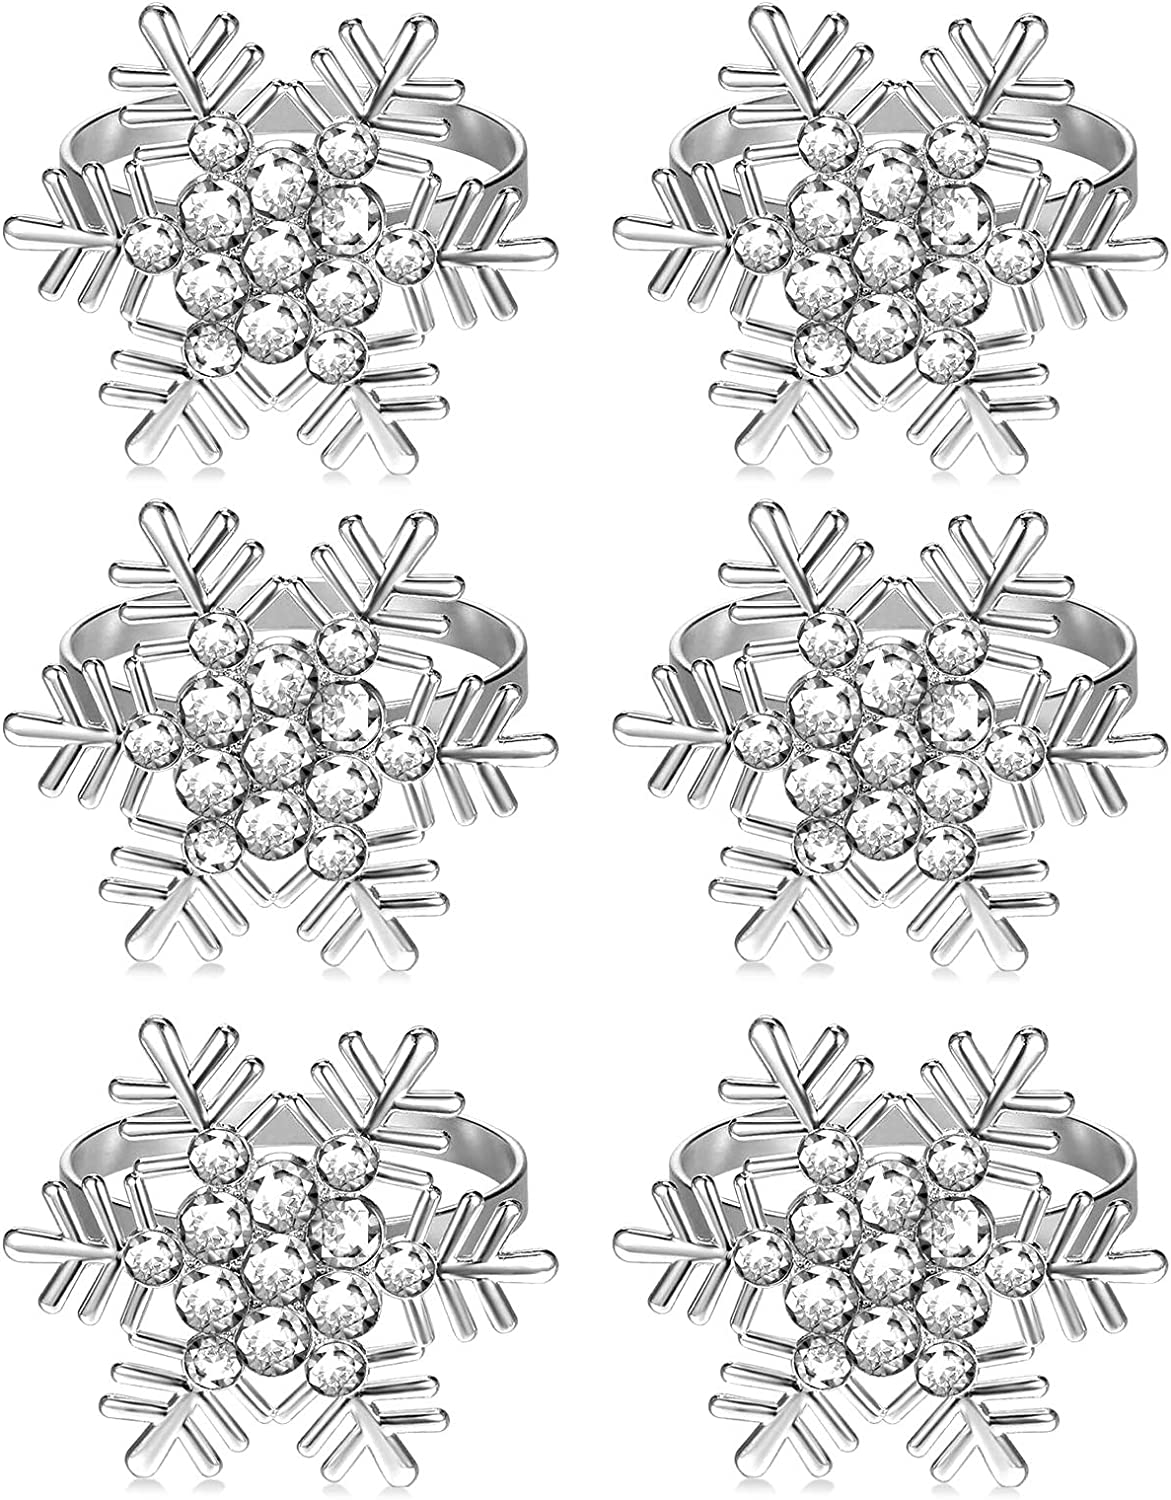 COOLPEEN Napkin Rings, Snowflake Napkin Holders, Table Napkins Round Serviette Buckles Decoration Favor for Wedding Dining Kitchen Decor Holiday Birthday Christmas Party (6 Pack, Silver)